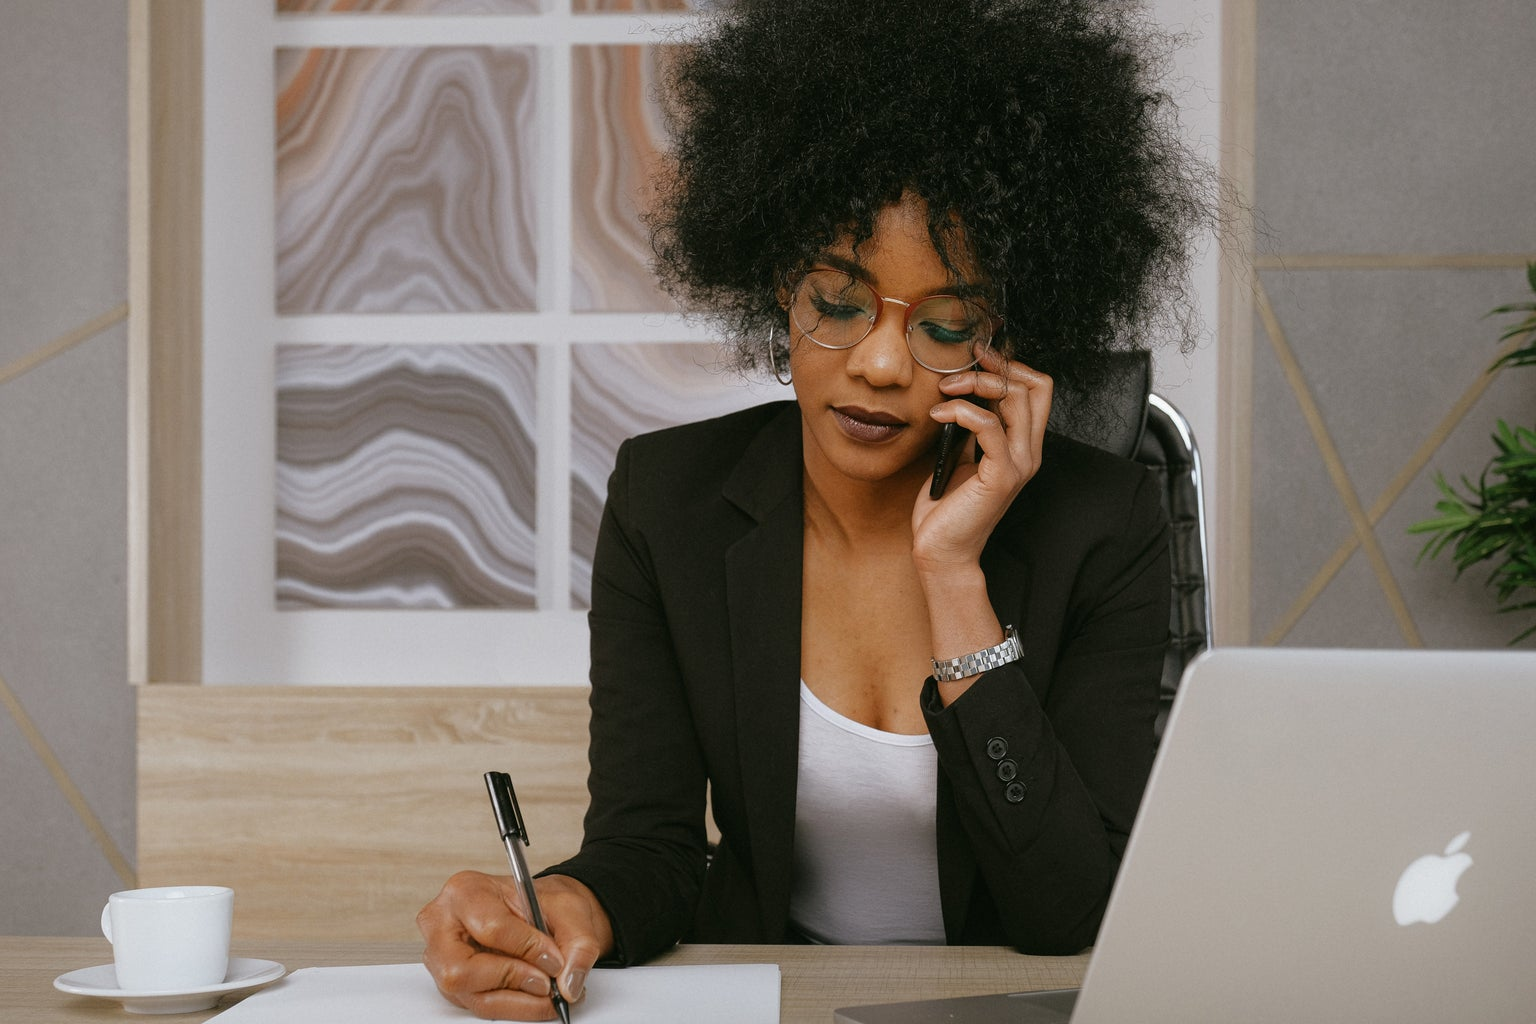 woman in black blazer on the phone taking notes